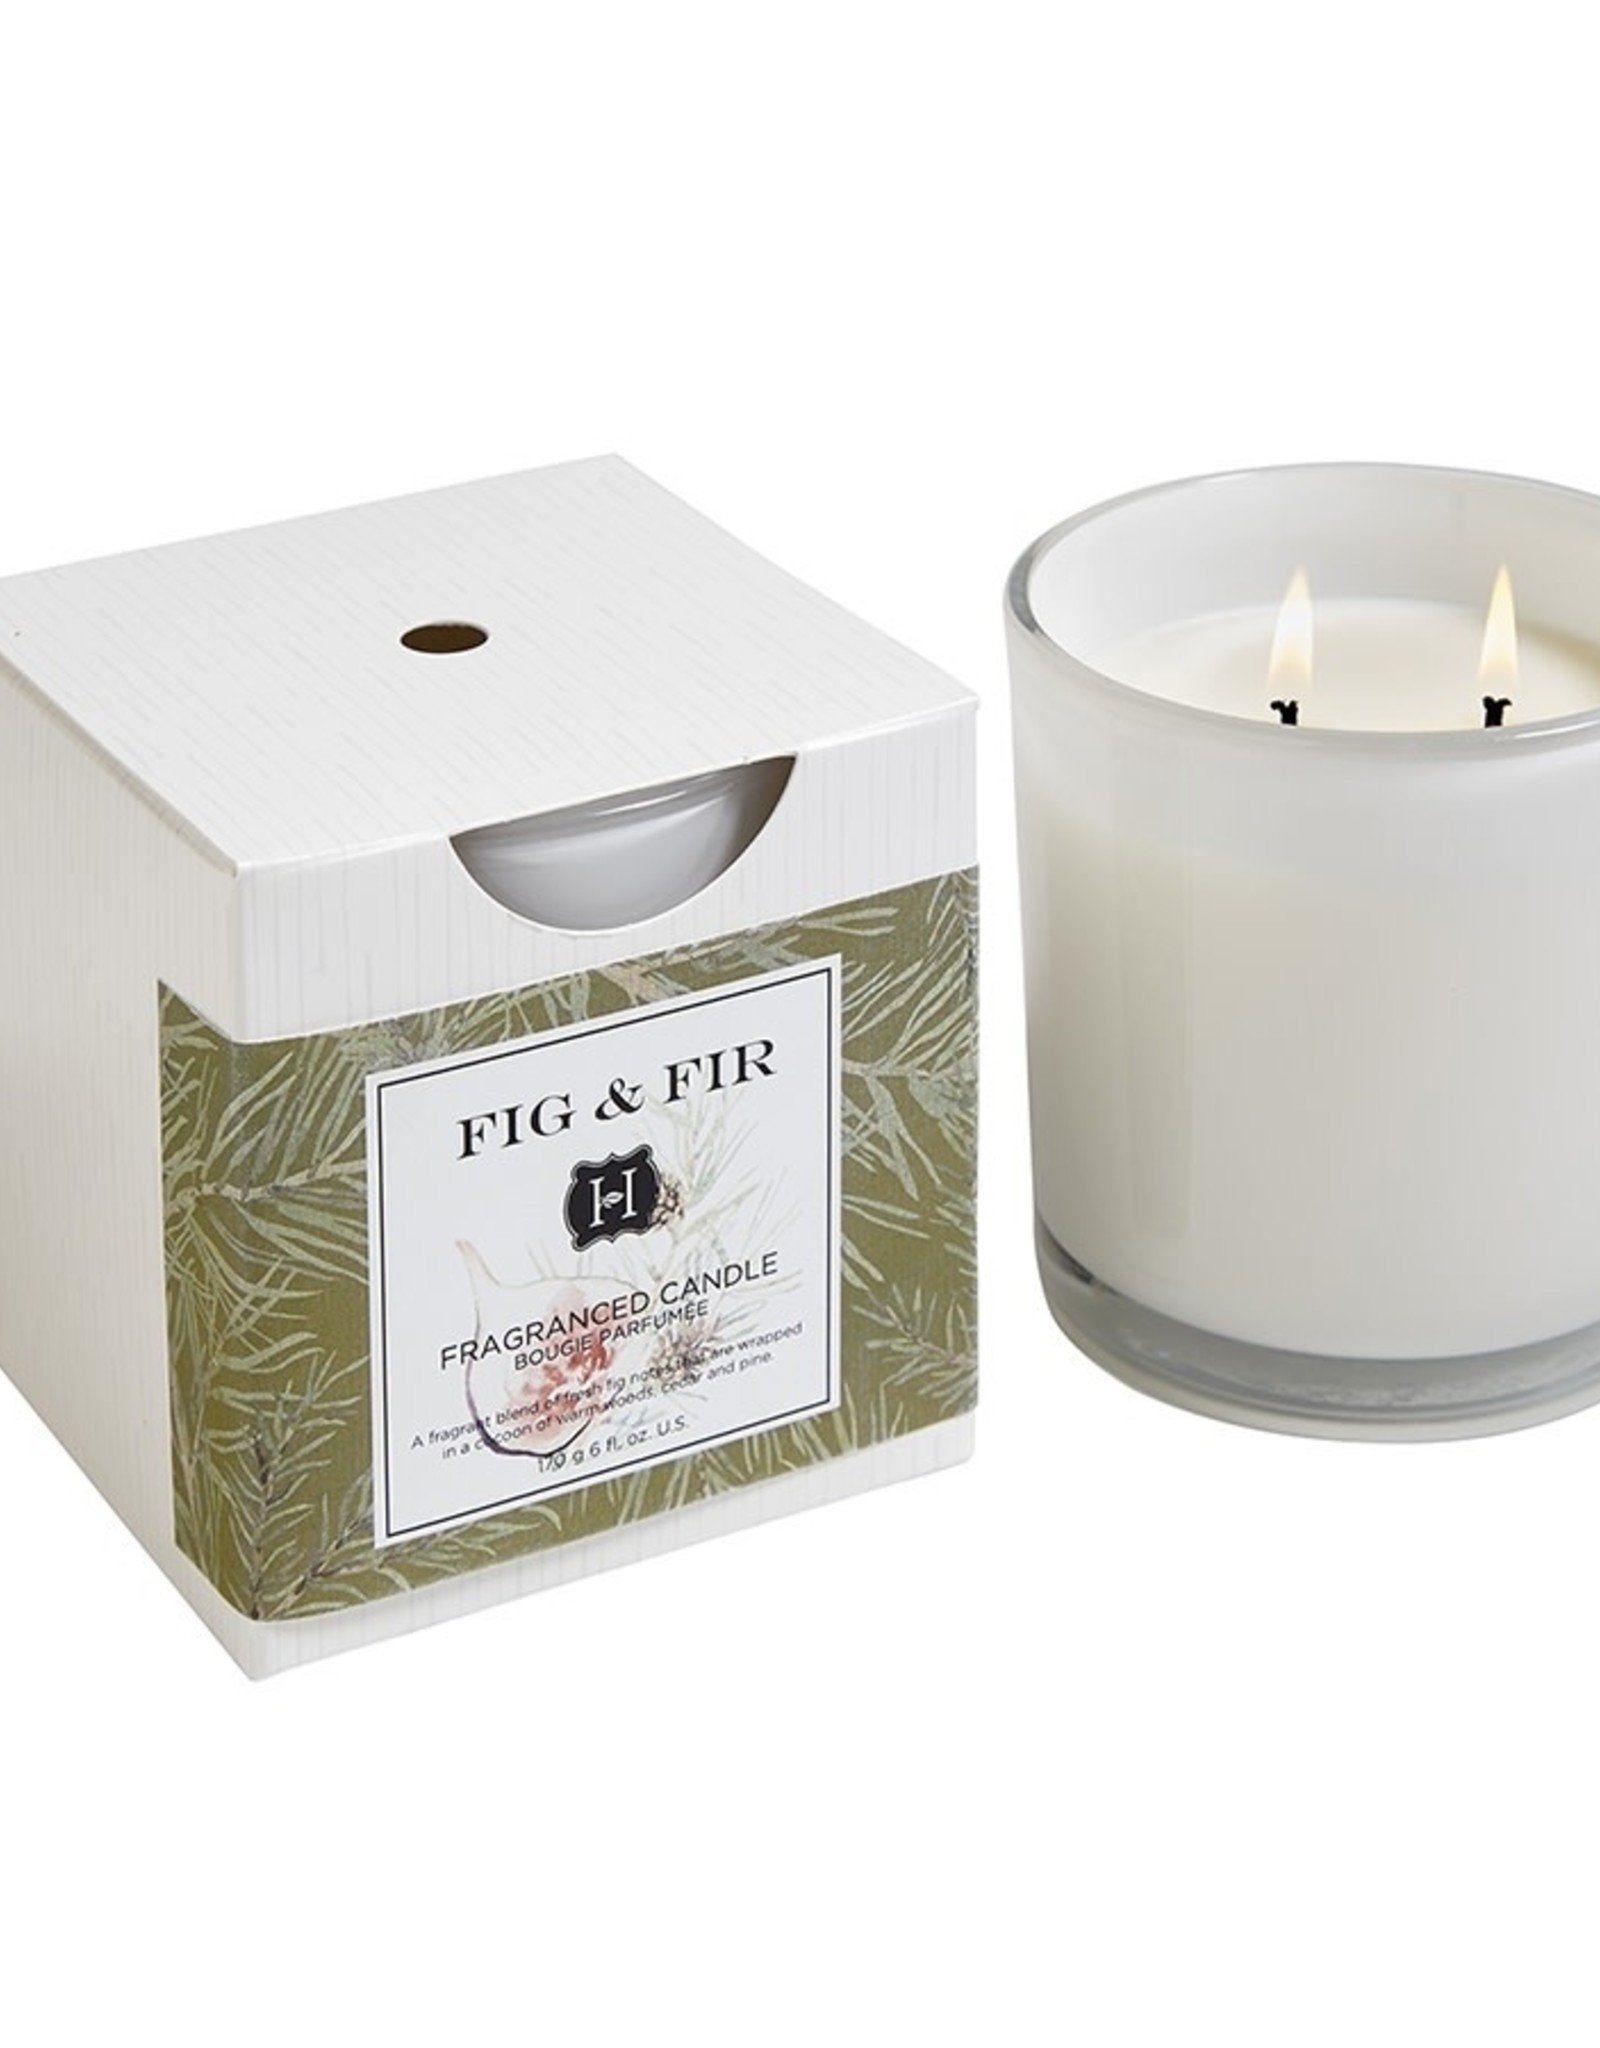 Hillhouse Naturals Fig & Fir 2 Wick Candle in Glass 12oz